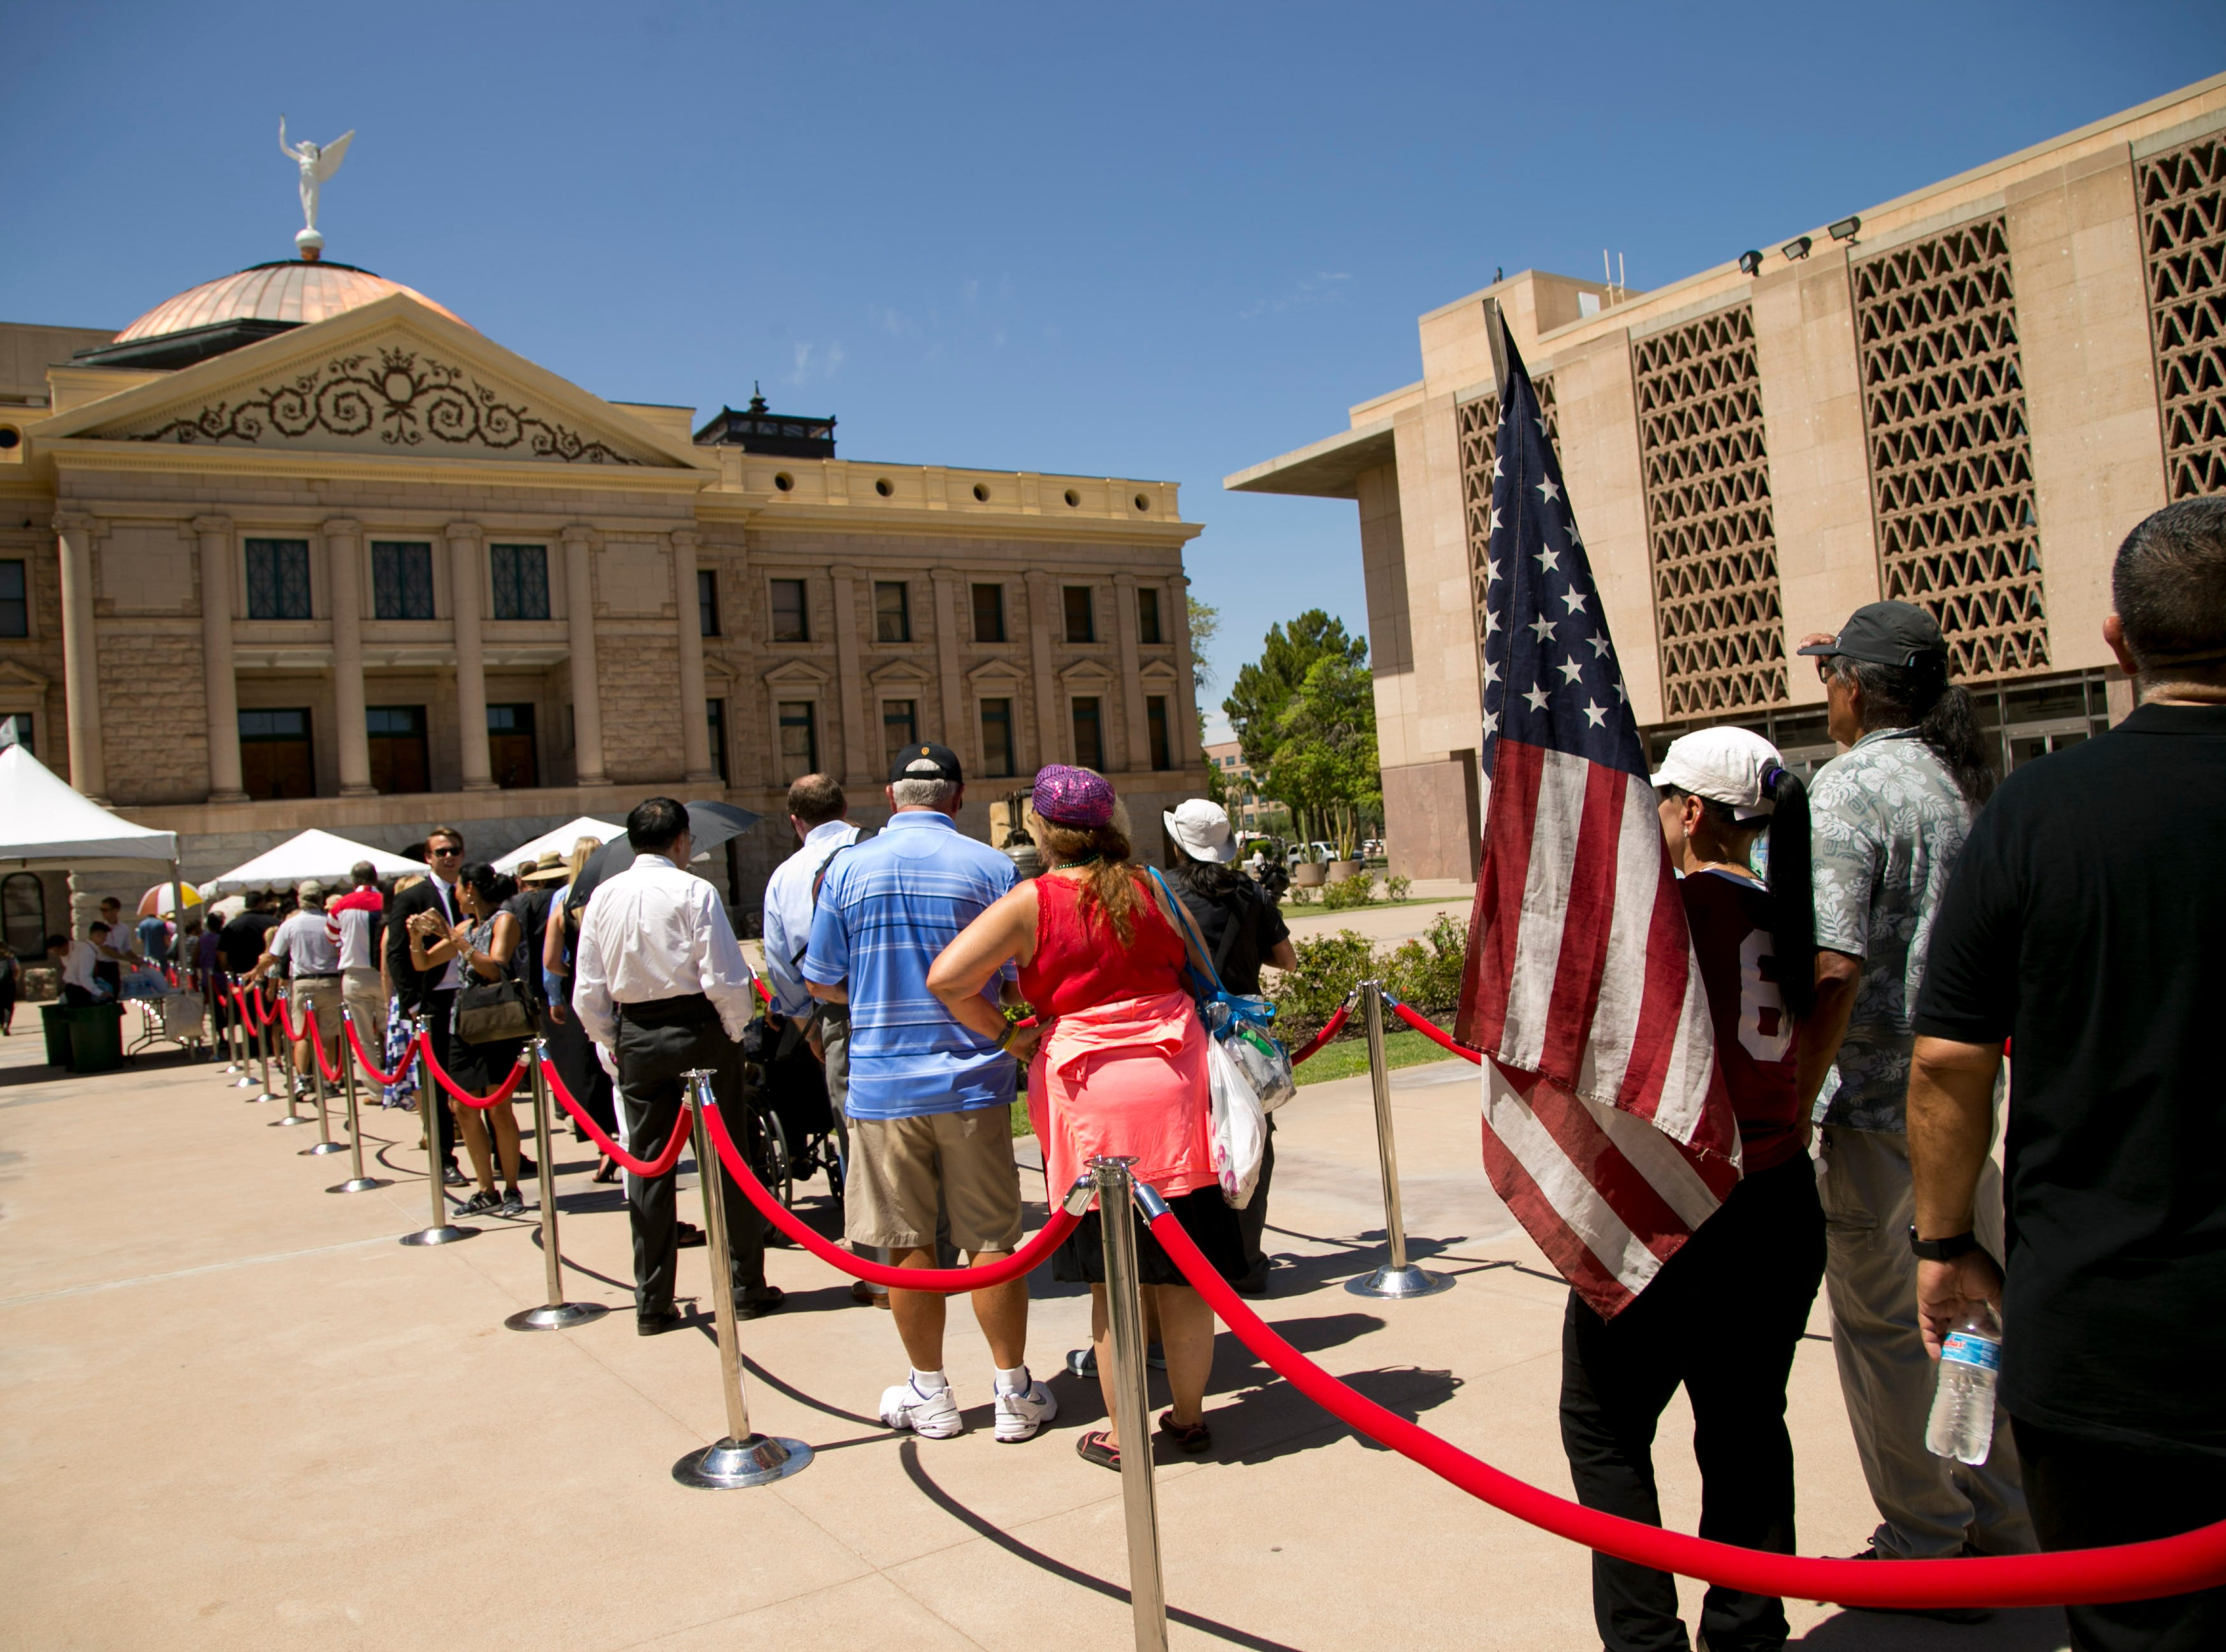 People wait in line to enter the Arizona state capitol during a public viewing as Senator John McCain lies in state in the state capitol in Phoenix on Wednesday, August 29, 2018.